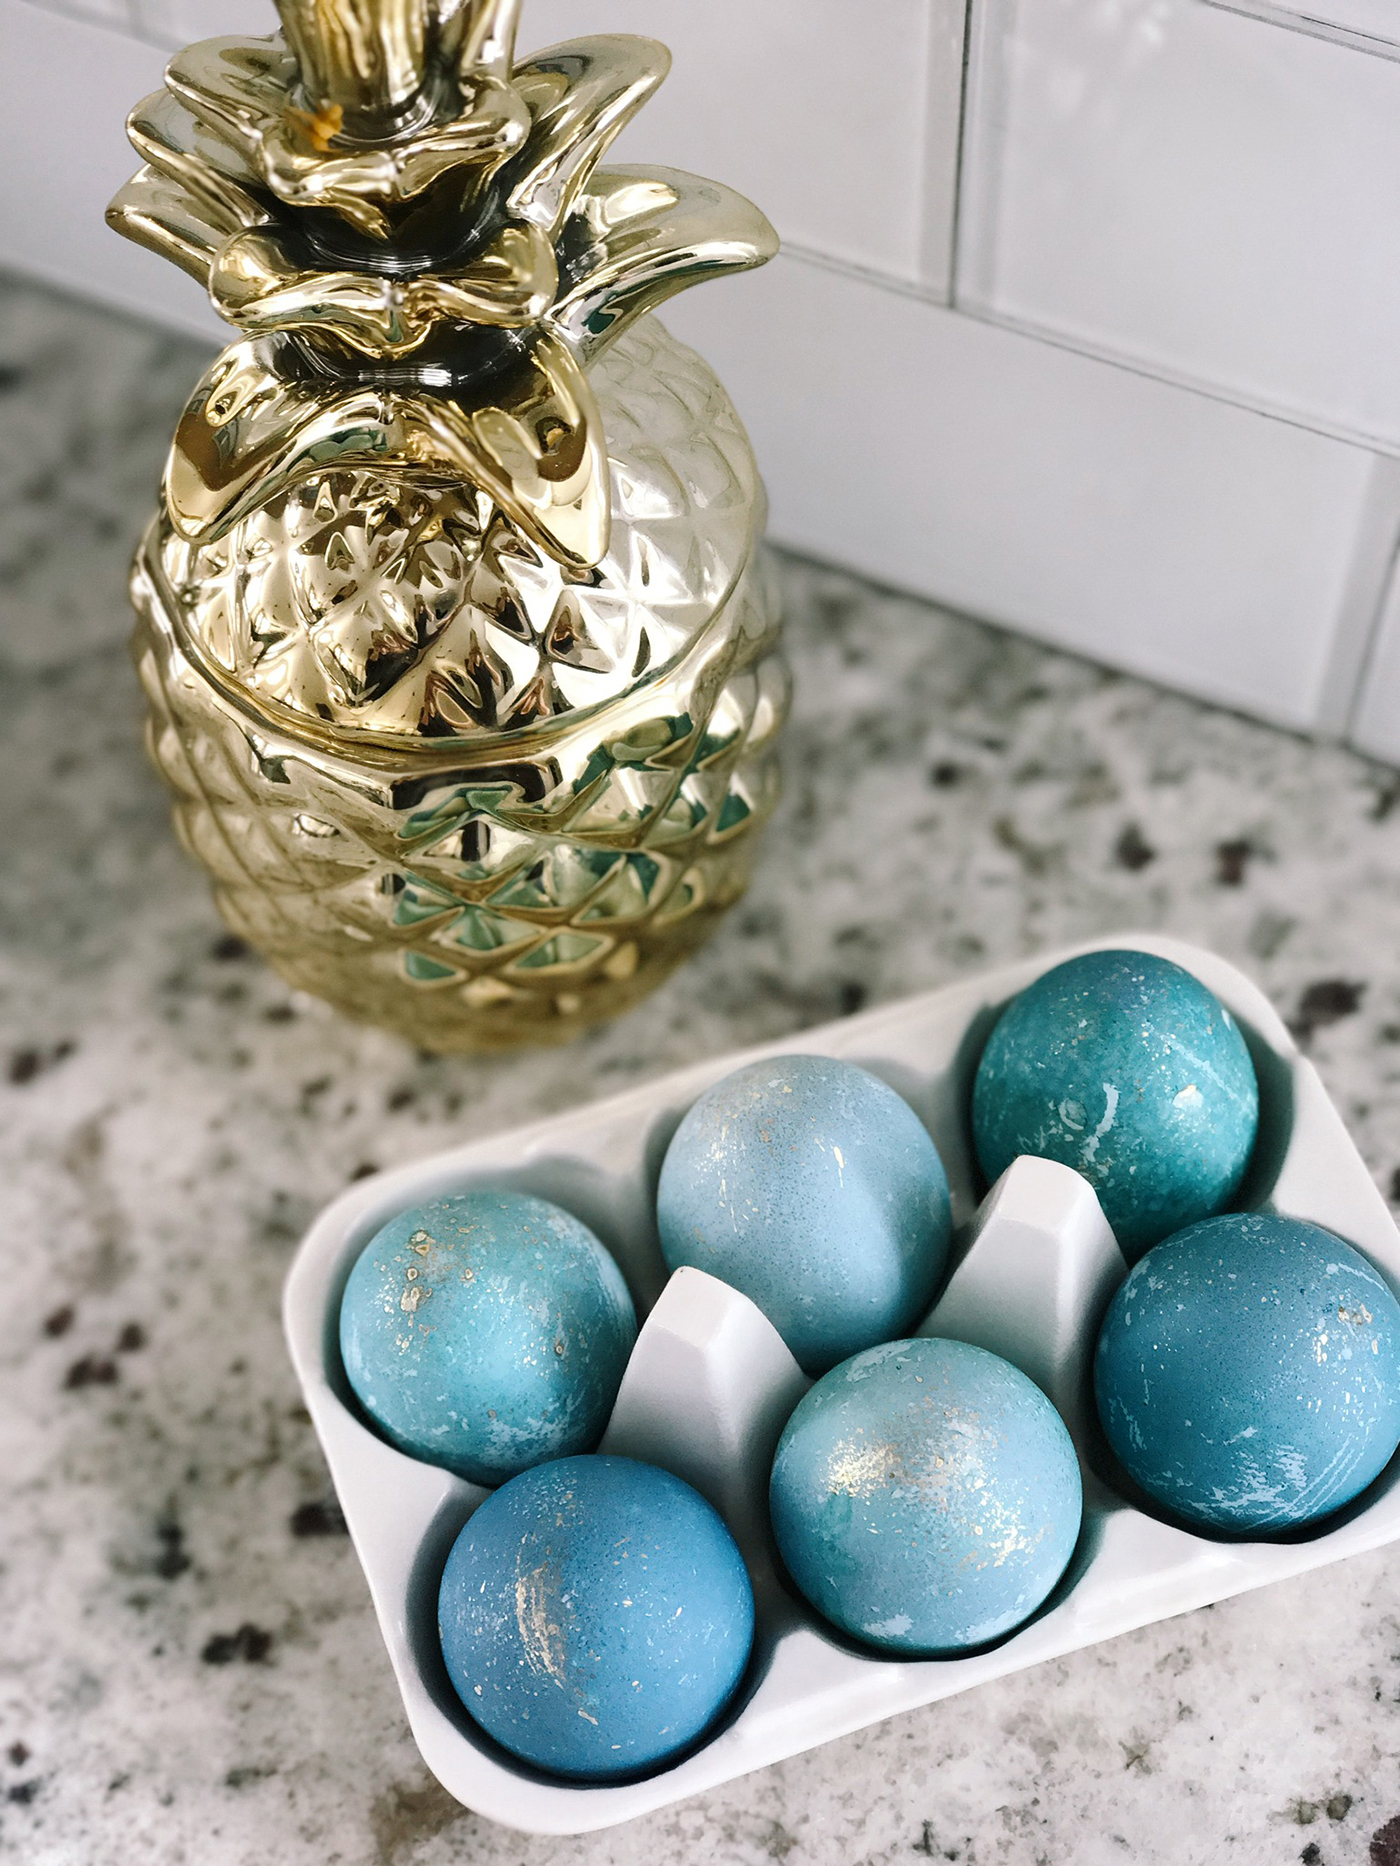 Naturally Dyed Easter Eggs - Kailey Marie Designs